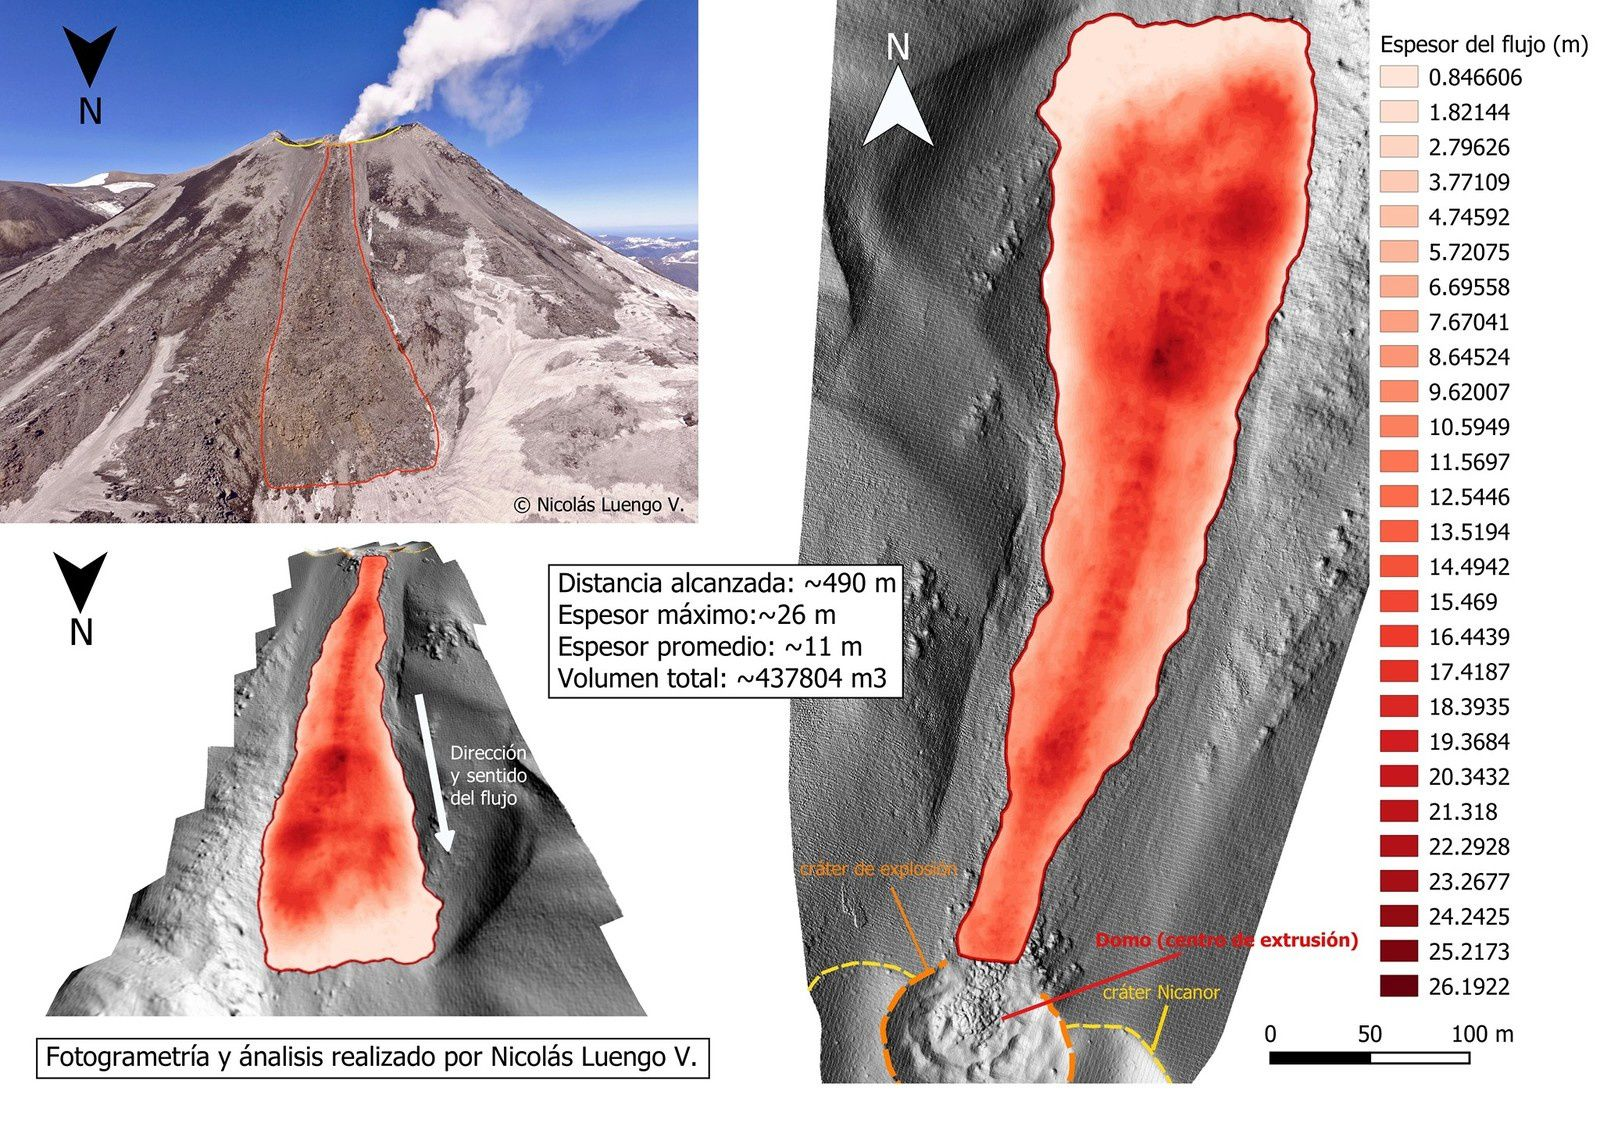 Nevados de Chillan - analysis of the lava flow - Doc. 11.10.2019 / Nicolas Luengo V. via Volcanologia in Chile